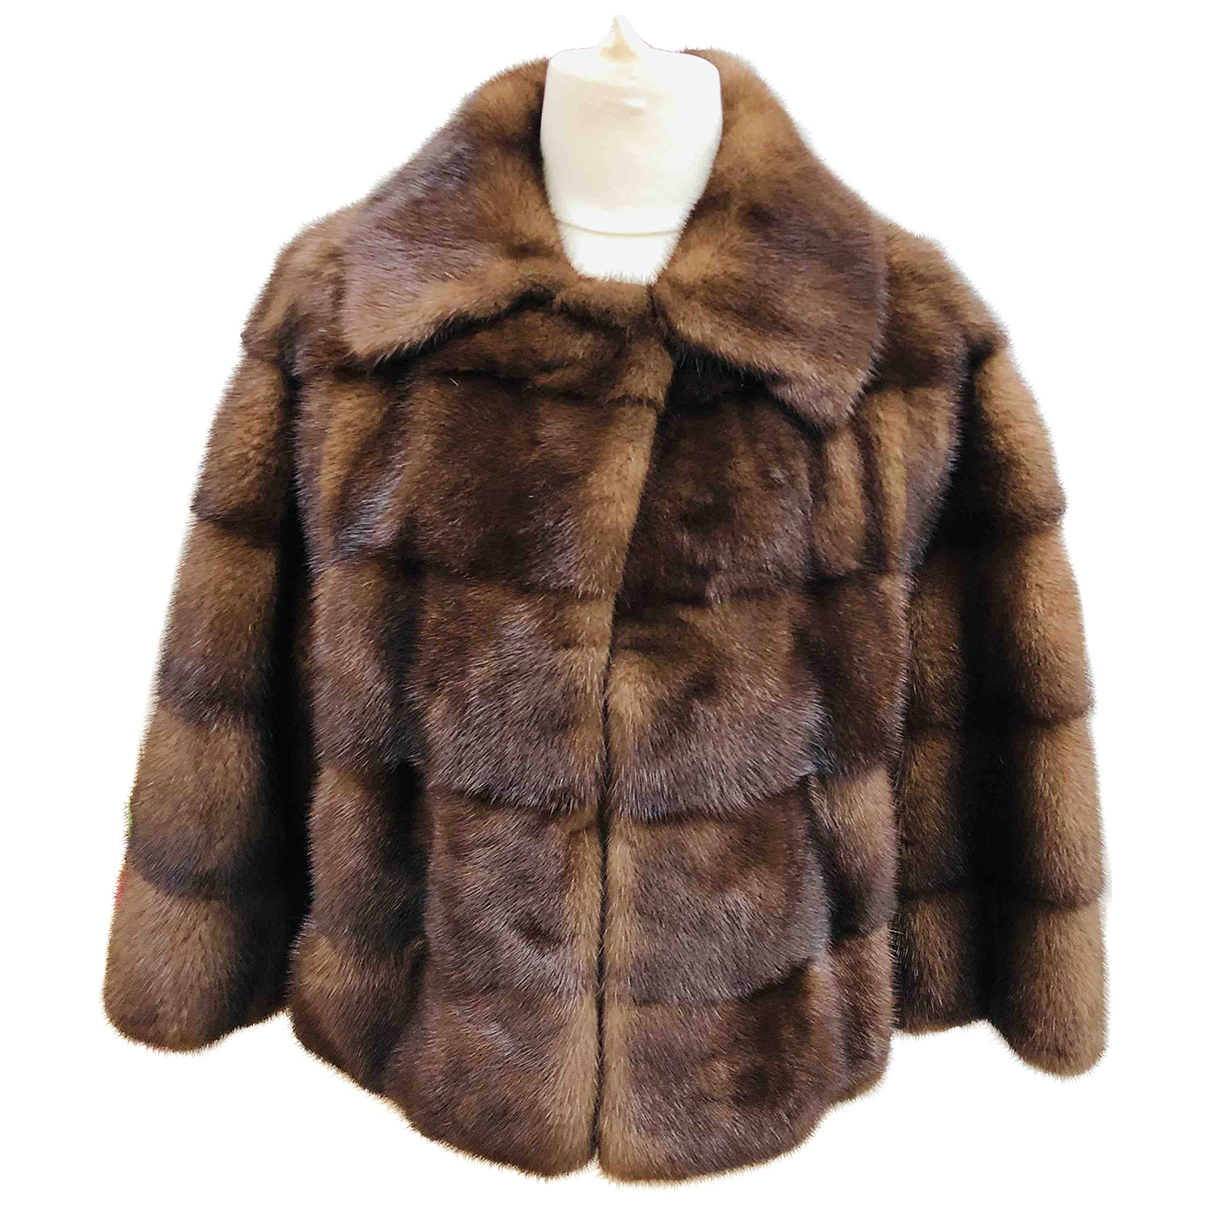 32 Paradis Sprung Freres \N Brown Mink jacket for Women 36 FR